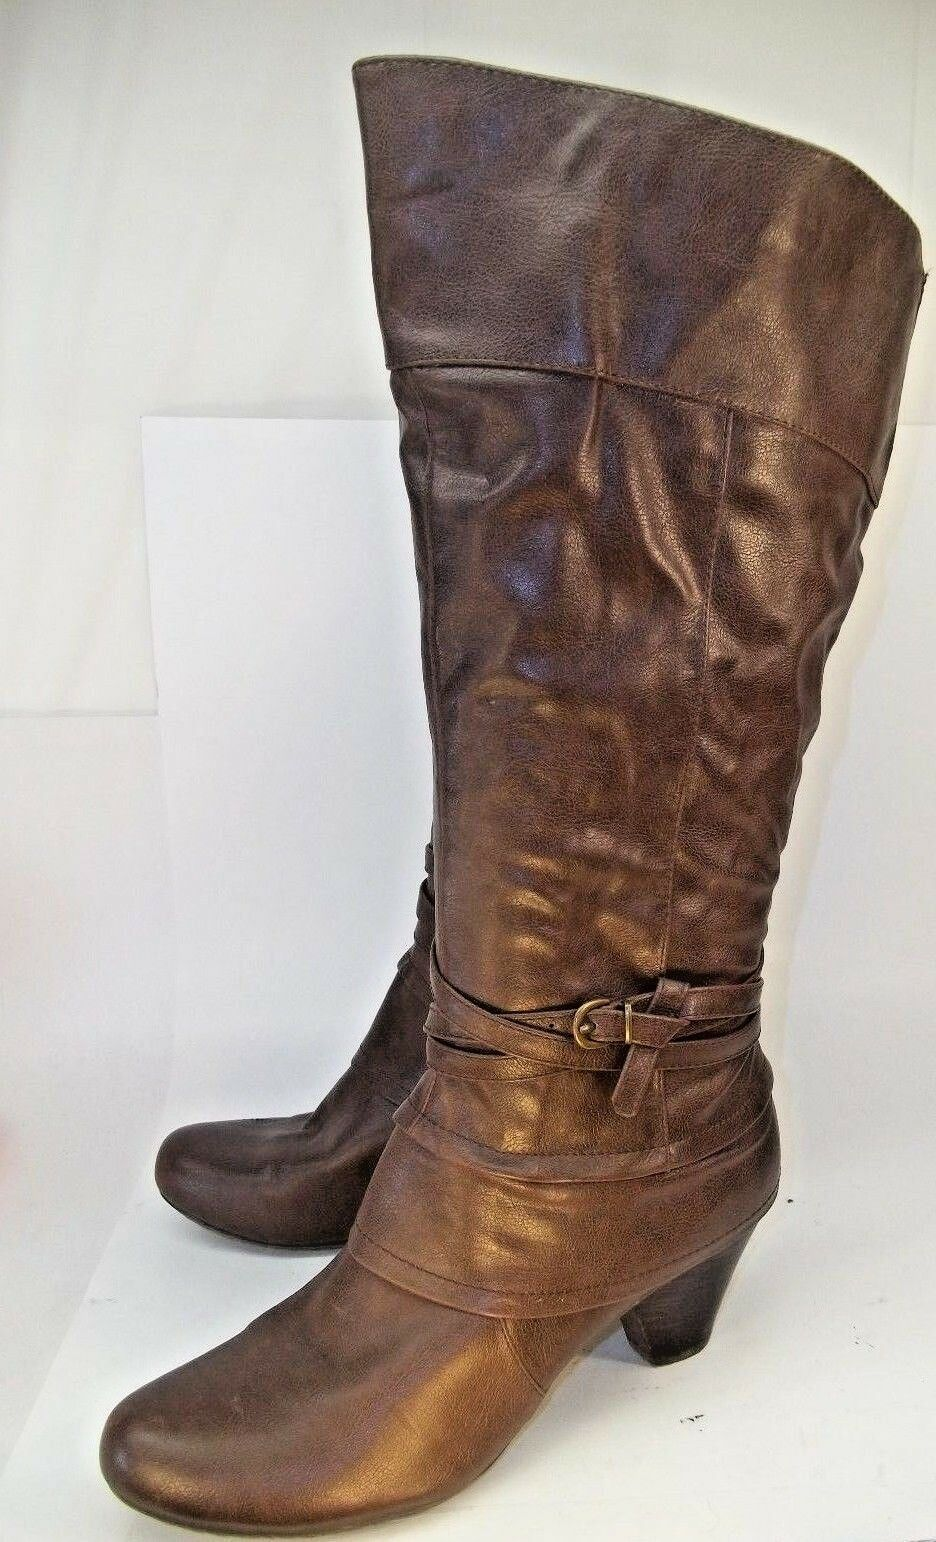 Bare Traps RYNONA Womens Boots US10M Brown Vegan Leather Zip Knee-High Casual